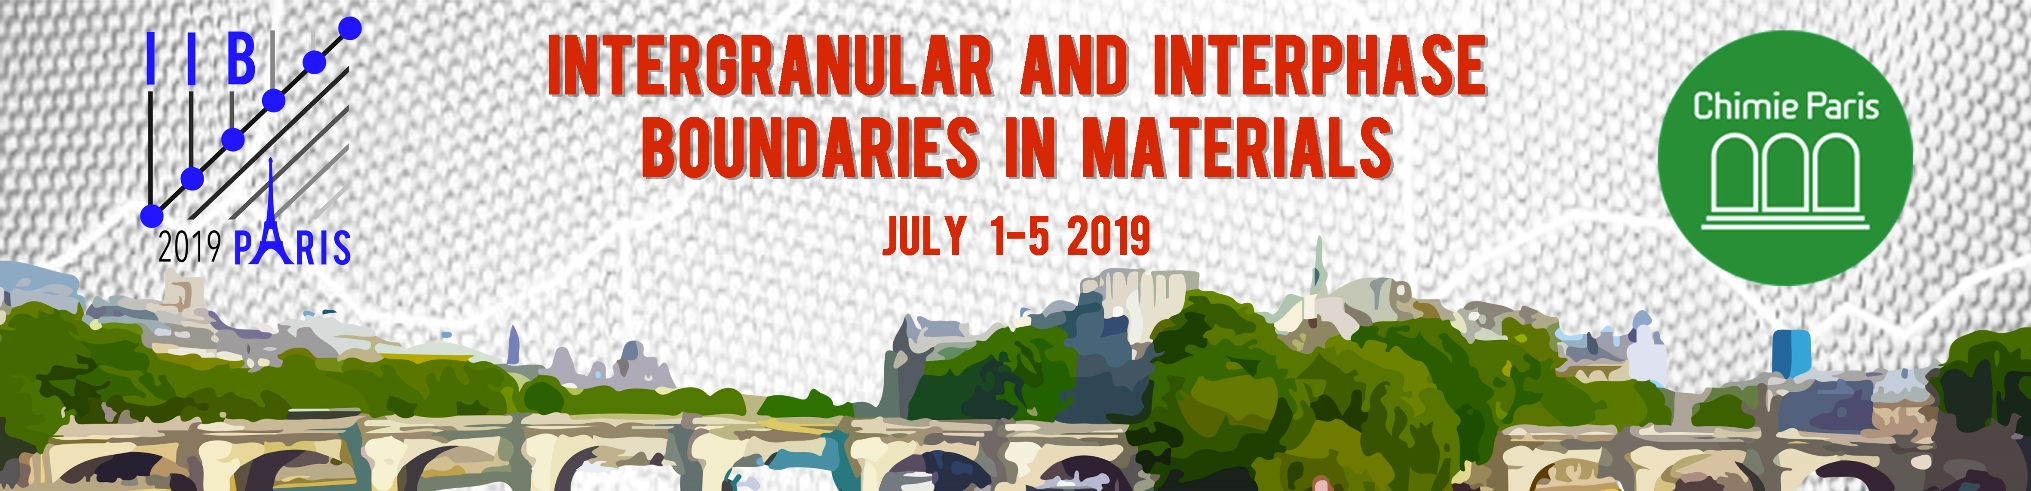 IIB2019: 16th International conference on Intergranular & Interphase Boundaries in Materials